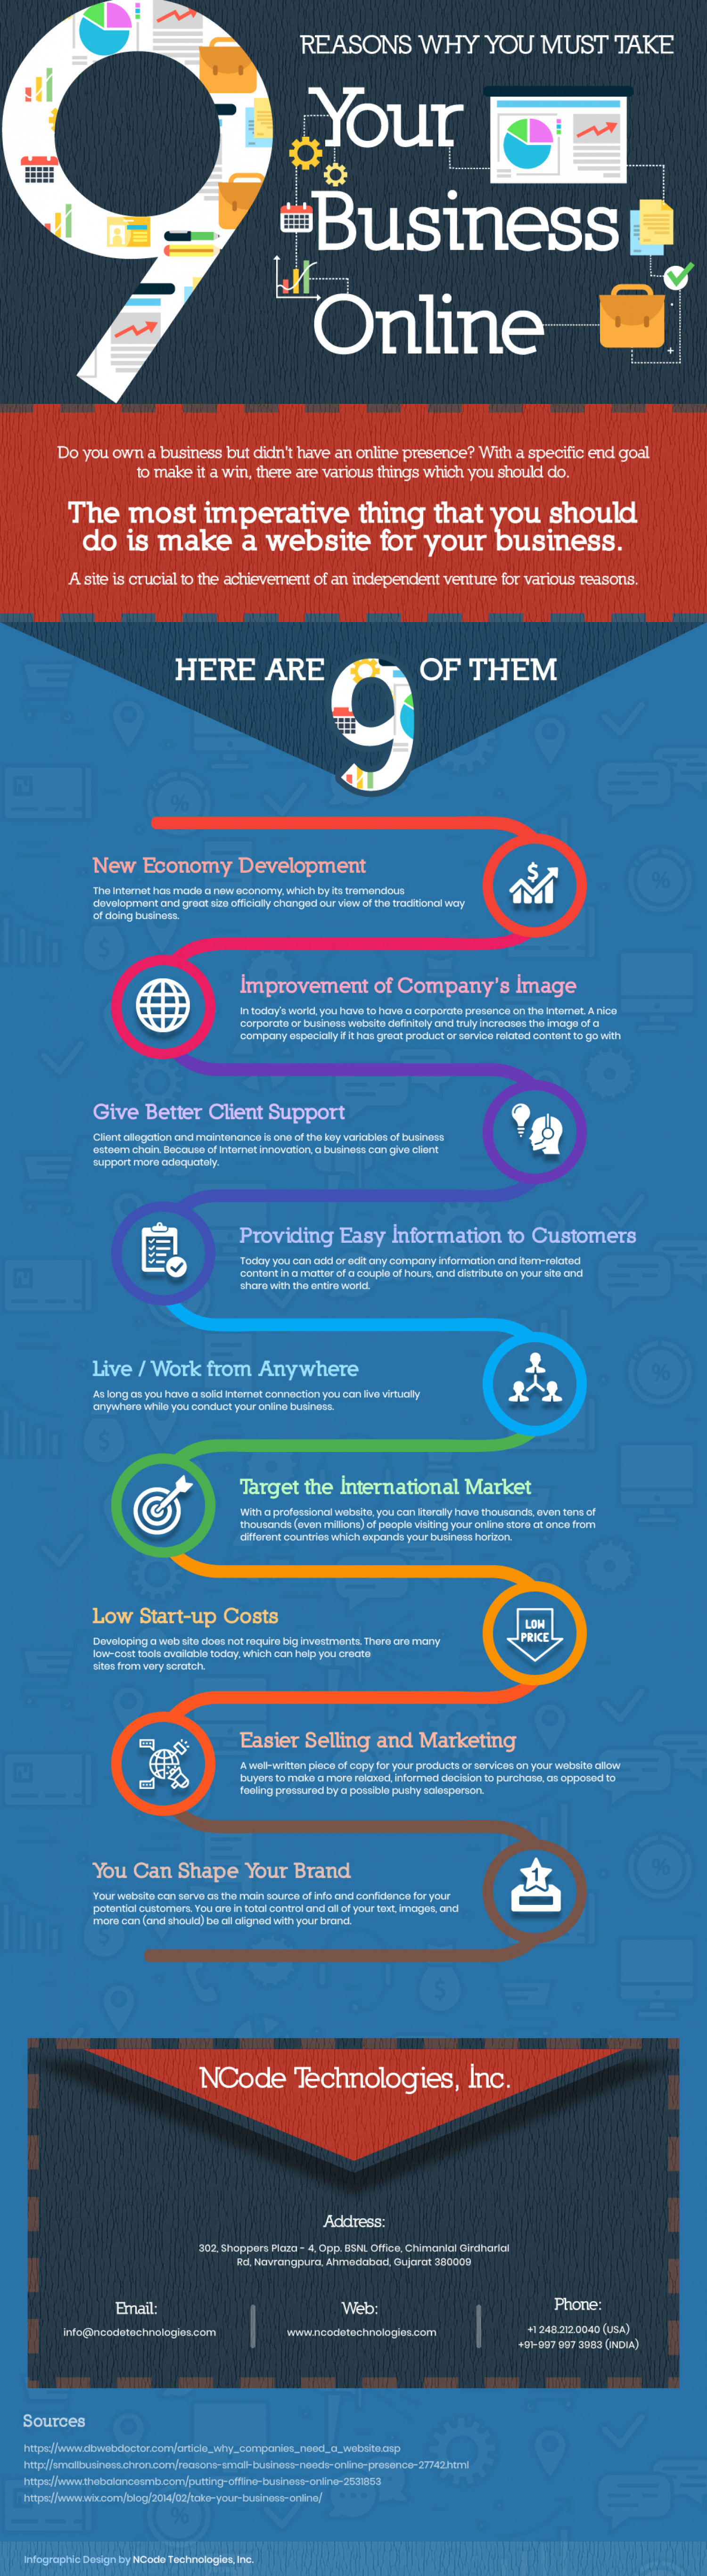 9 Reasons Why You Must Take Your Business Online Infographic